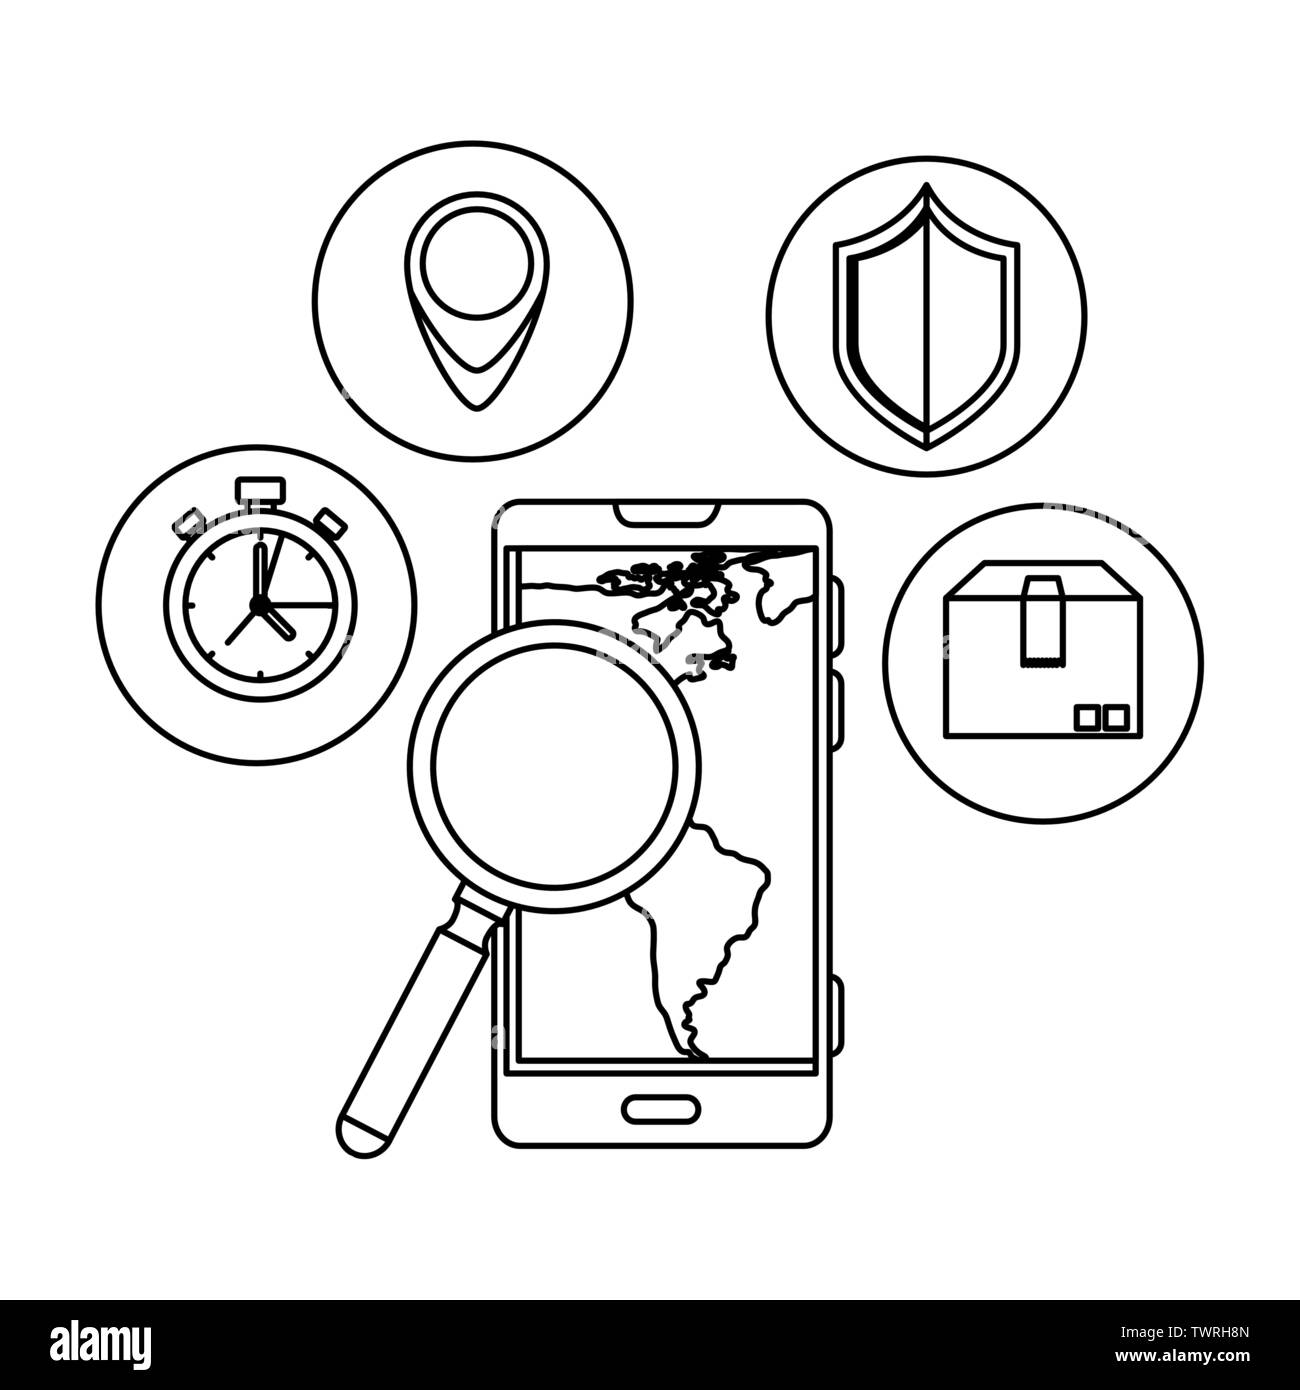 smartphone with magnifying and delivery icons - Stock Image